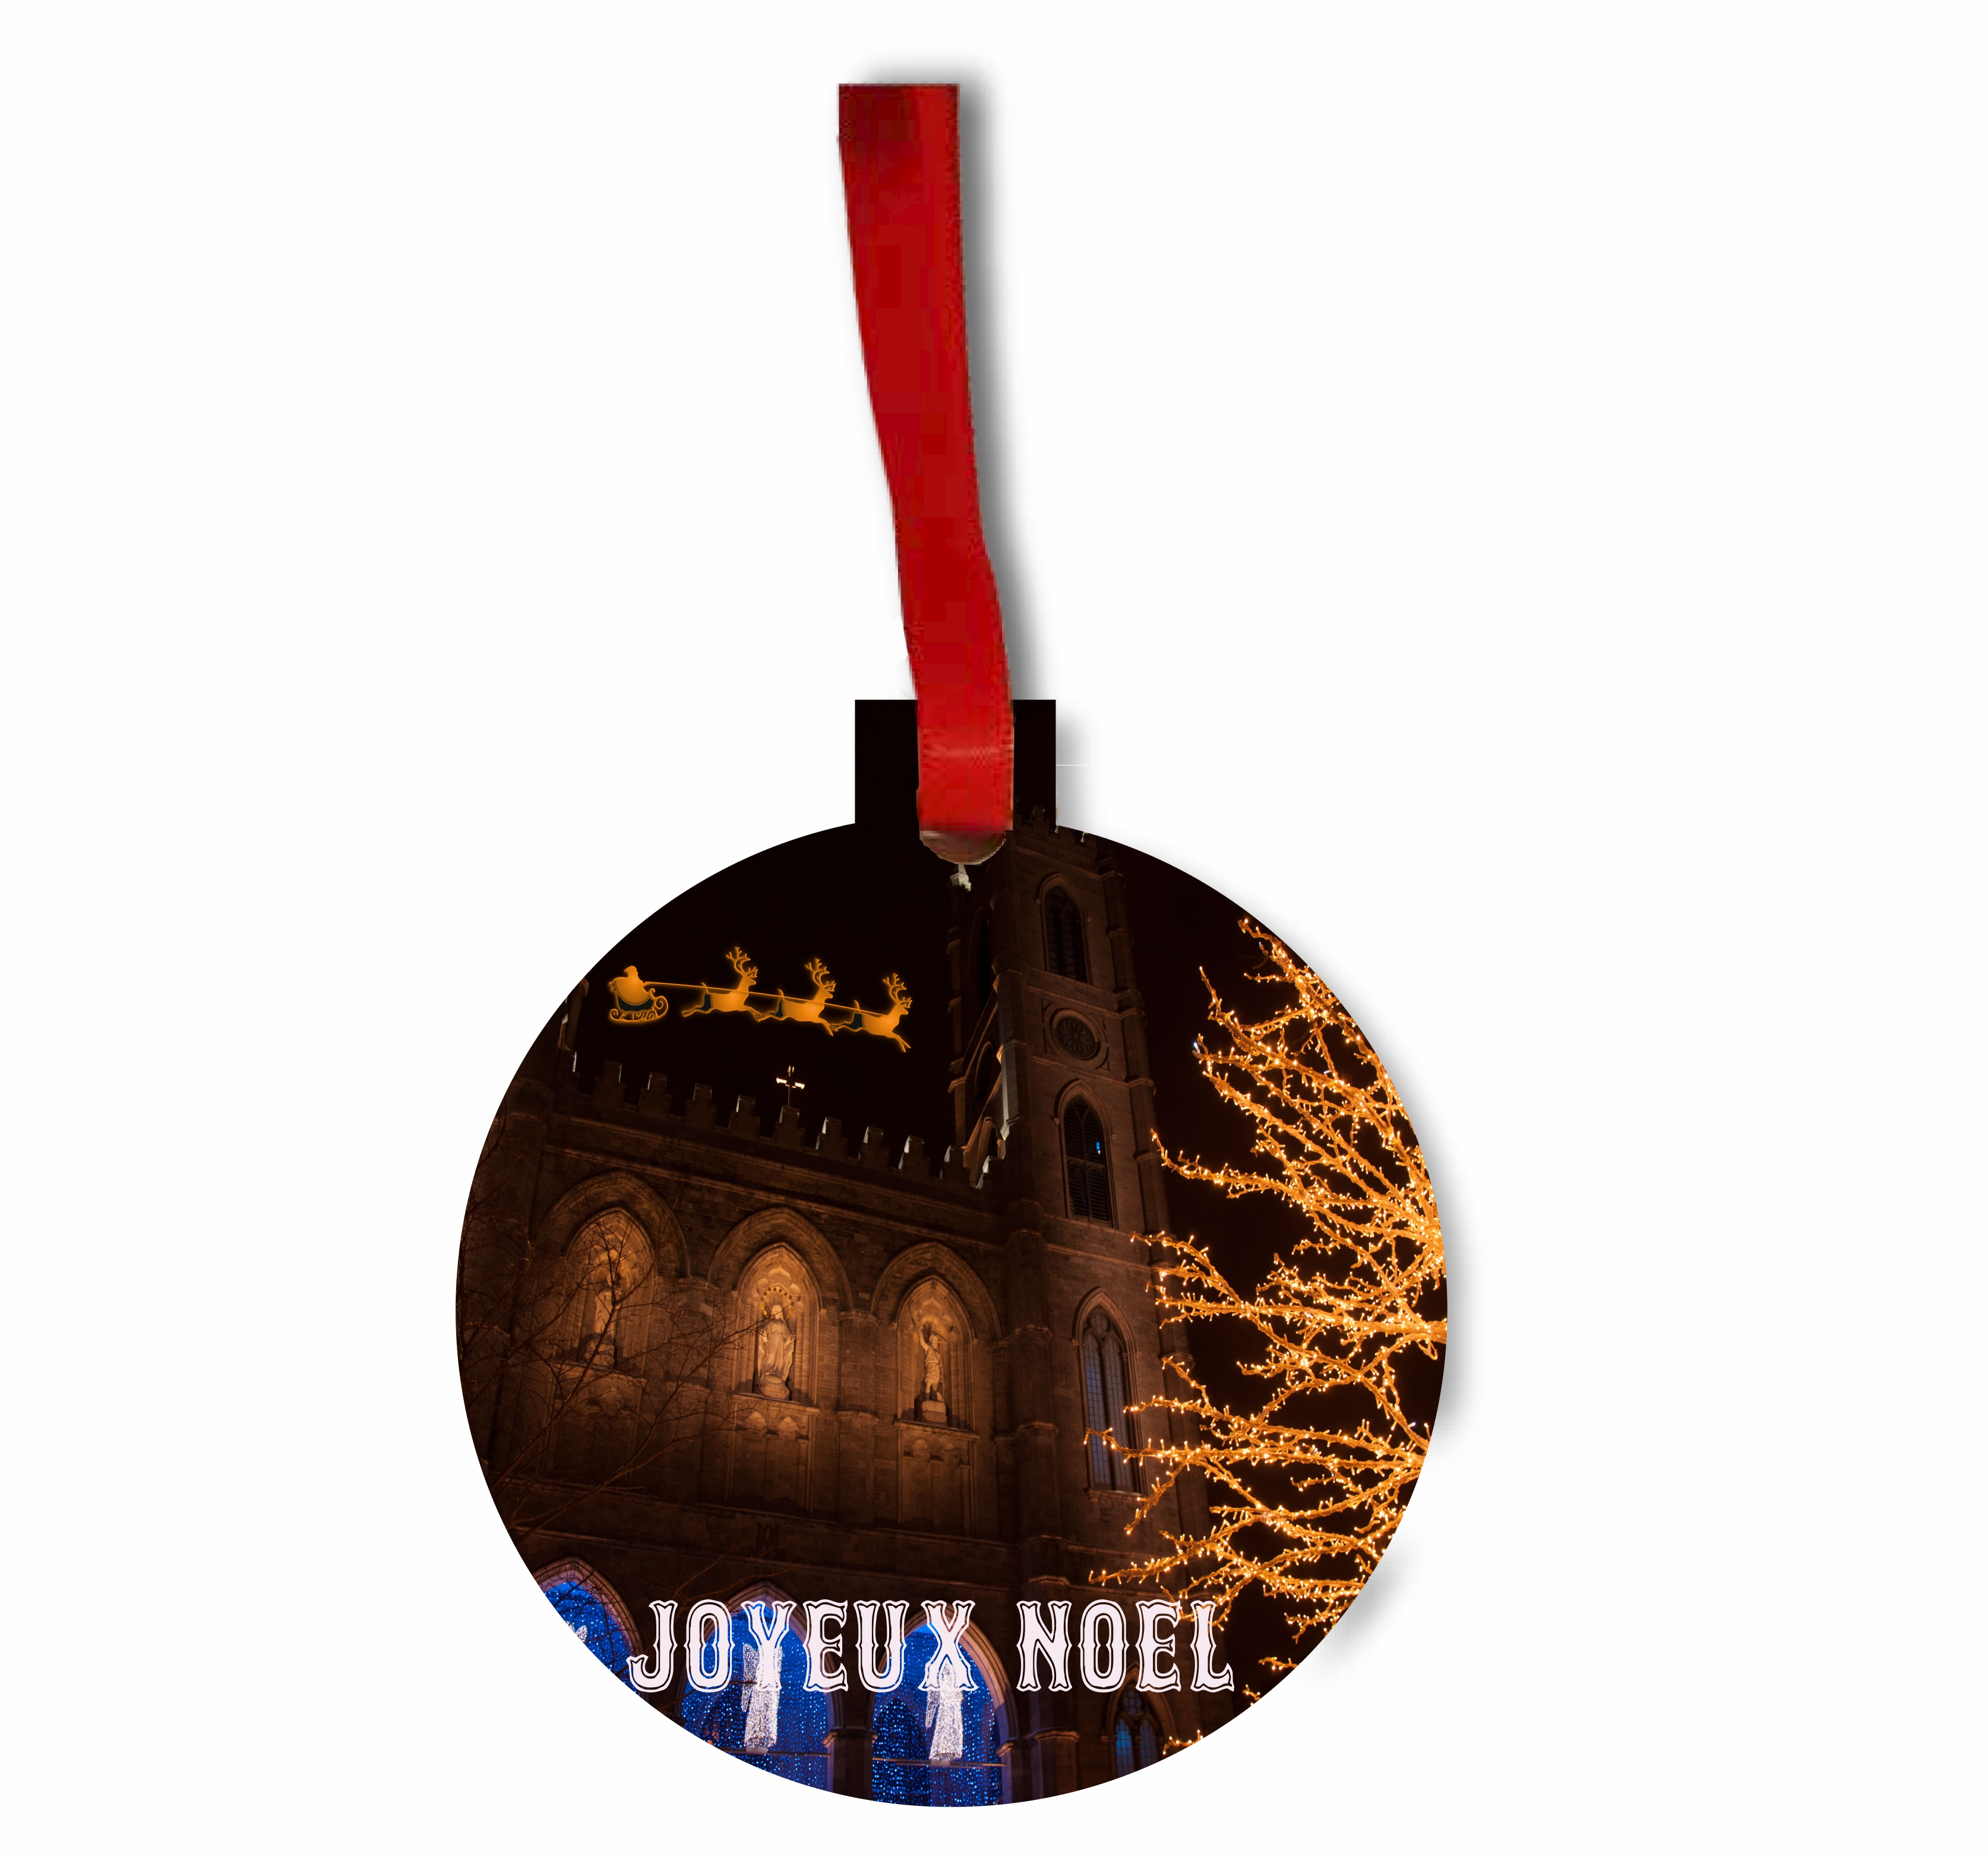 Santa and Sleigh Riding Over The Notre Dame Cathedral on Christmas Eve TM Flat Round-Shaped Hardboard Holiday Tree Ornament Made in the USA